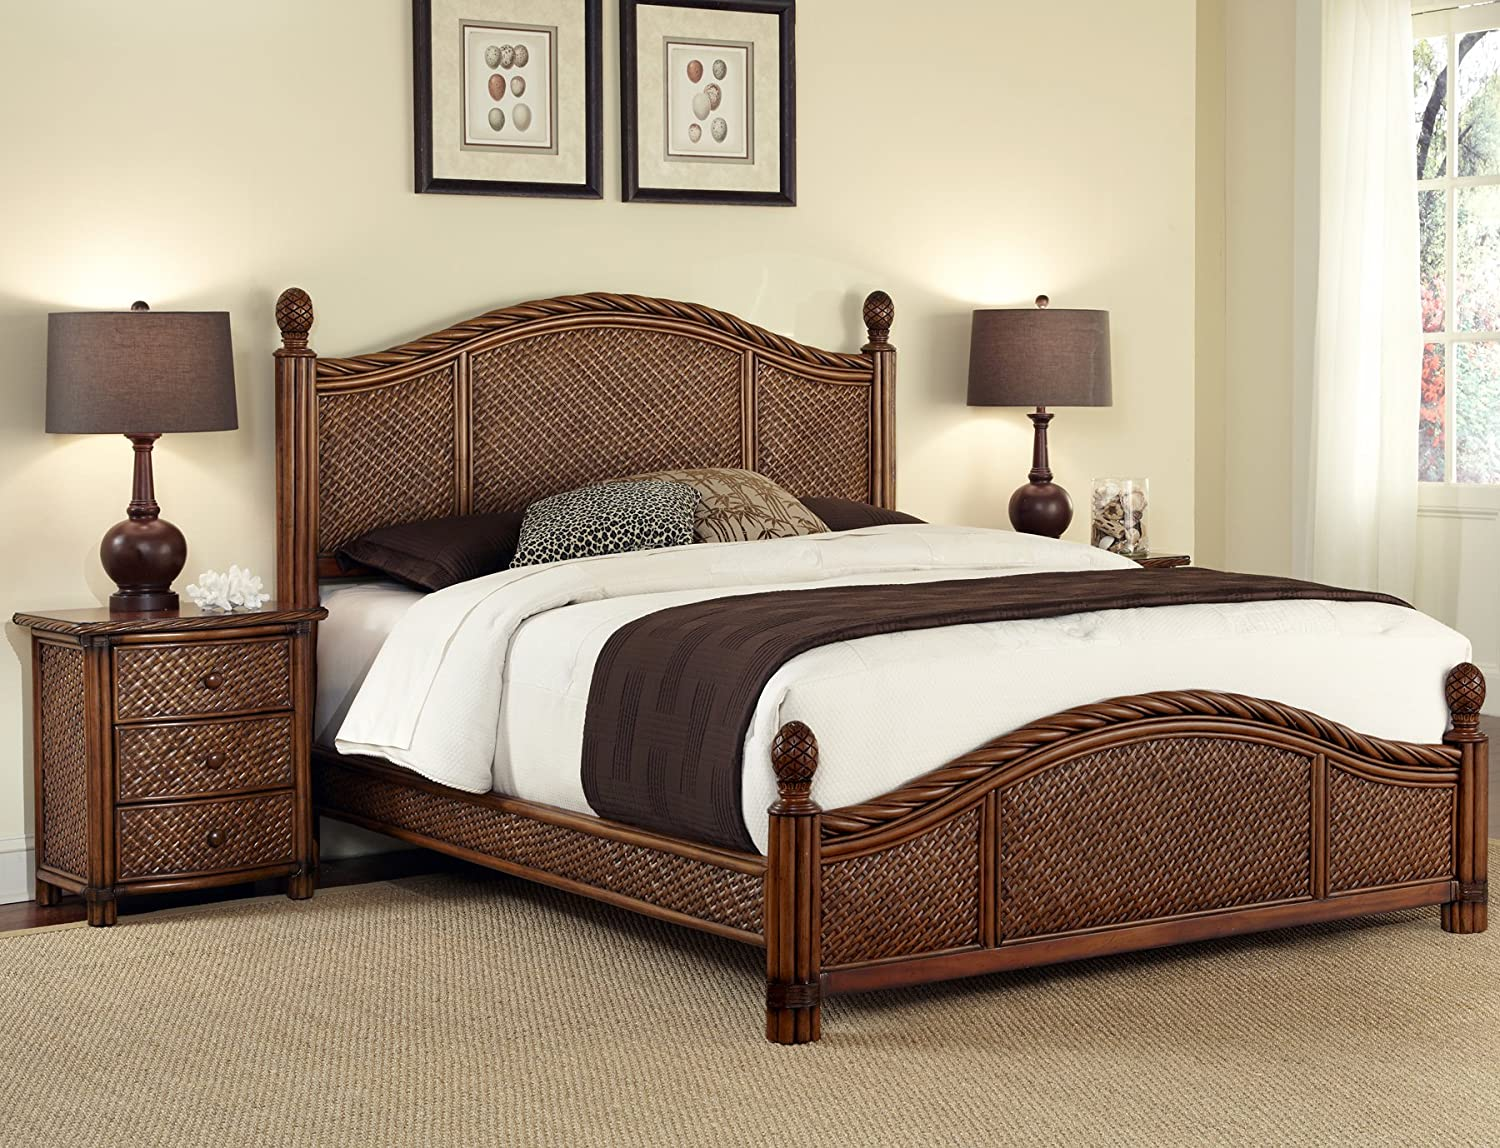 Impressive Queen Bedroom Sets On Sale Exterior